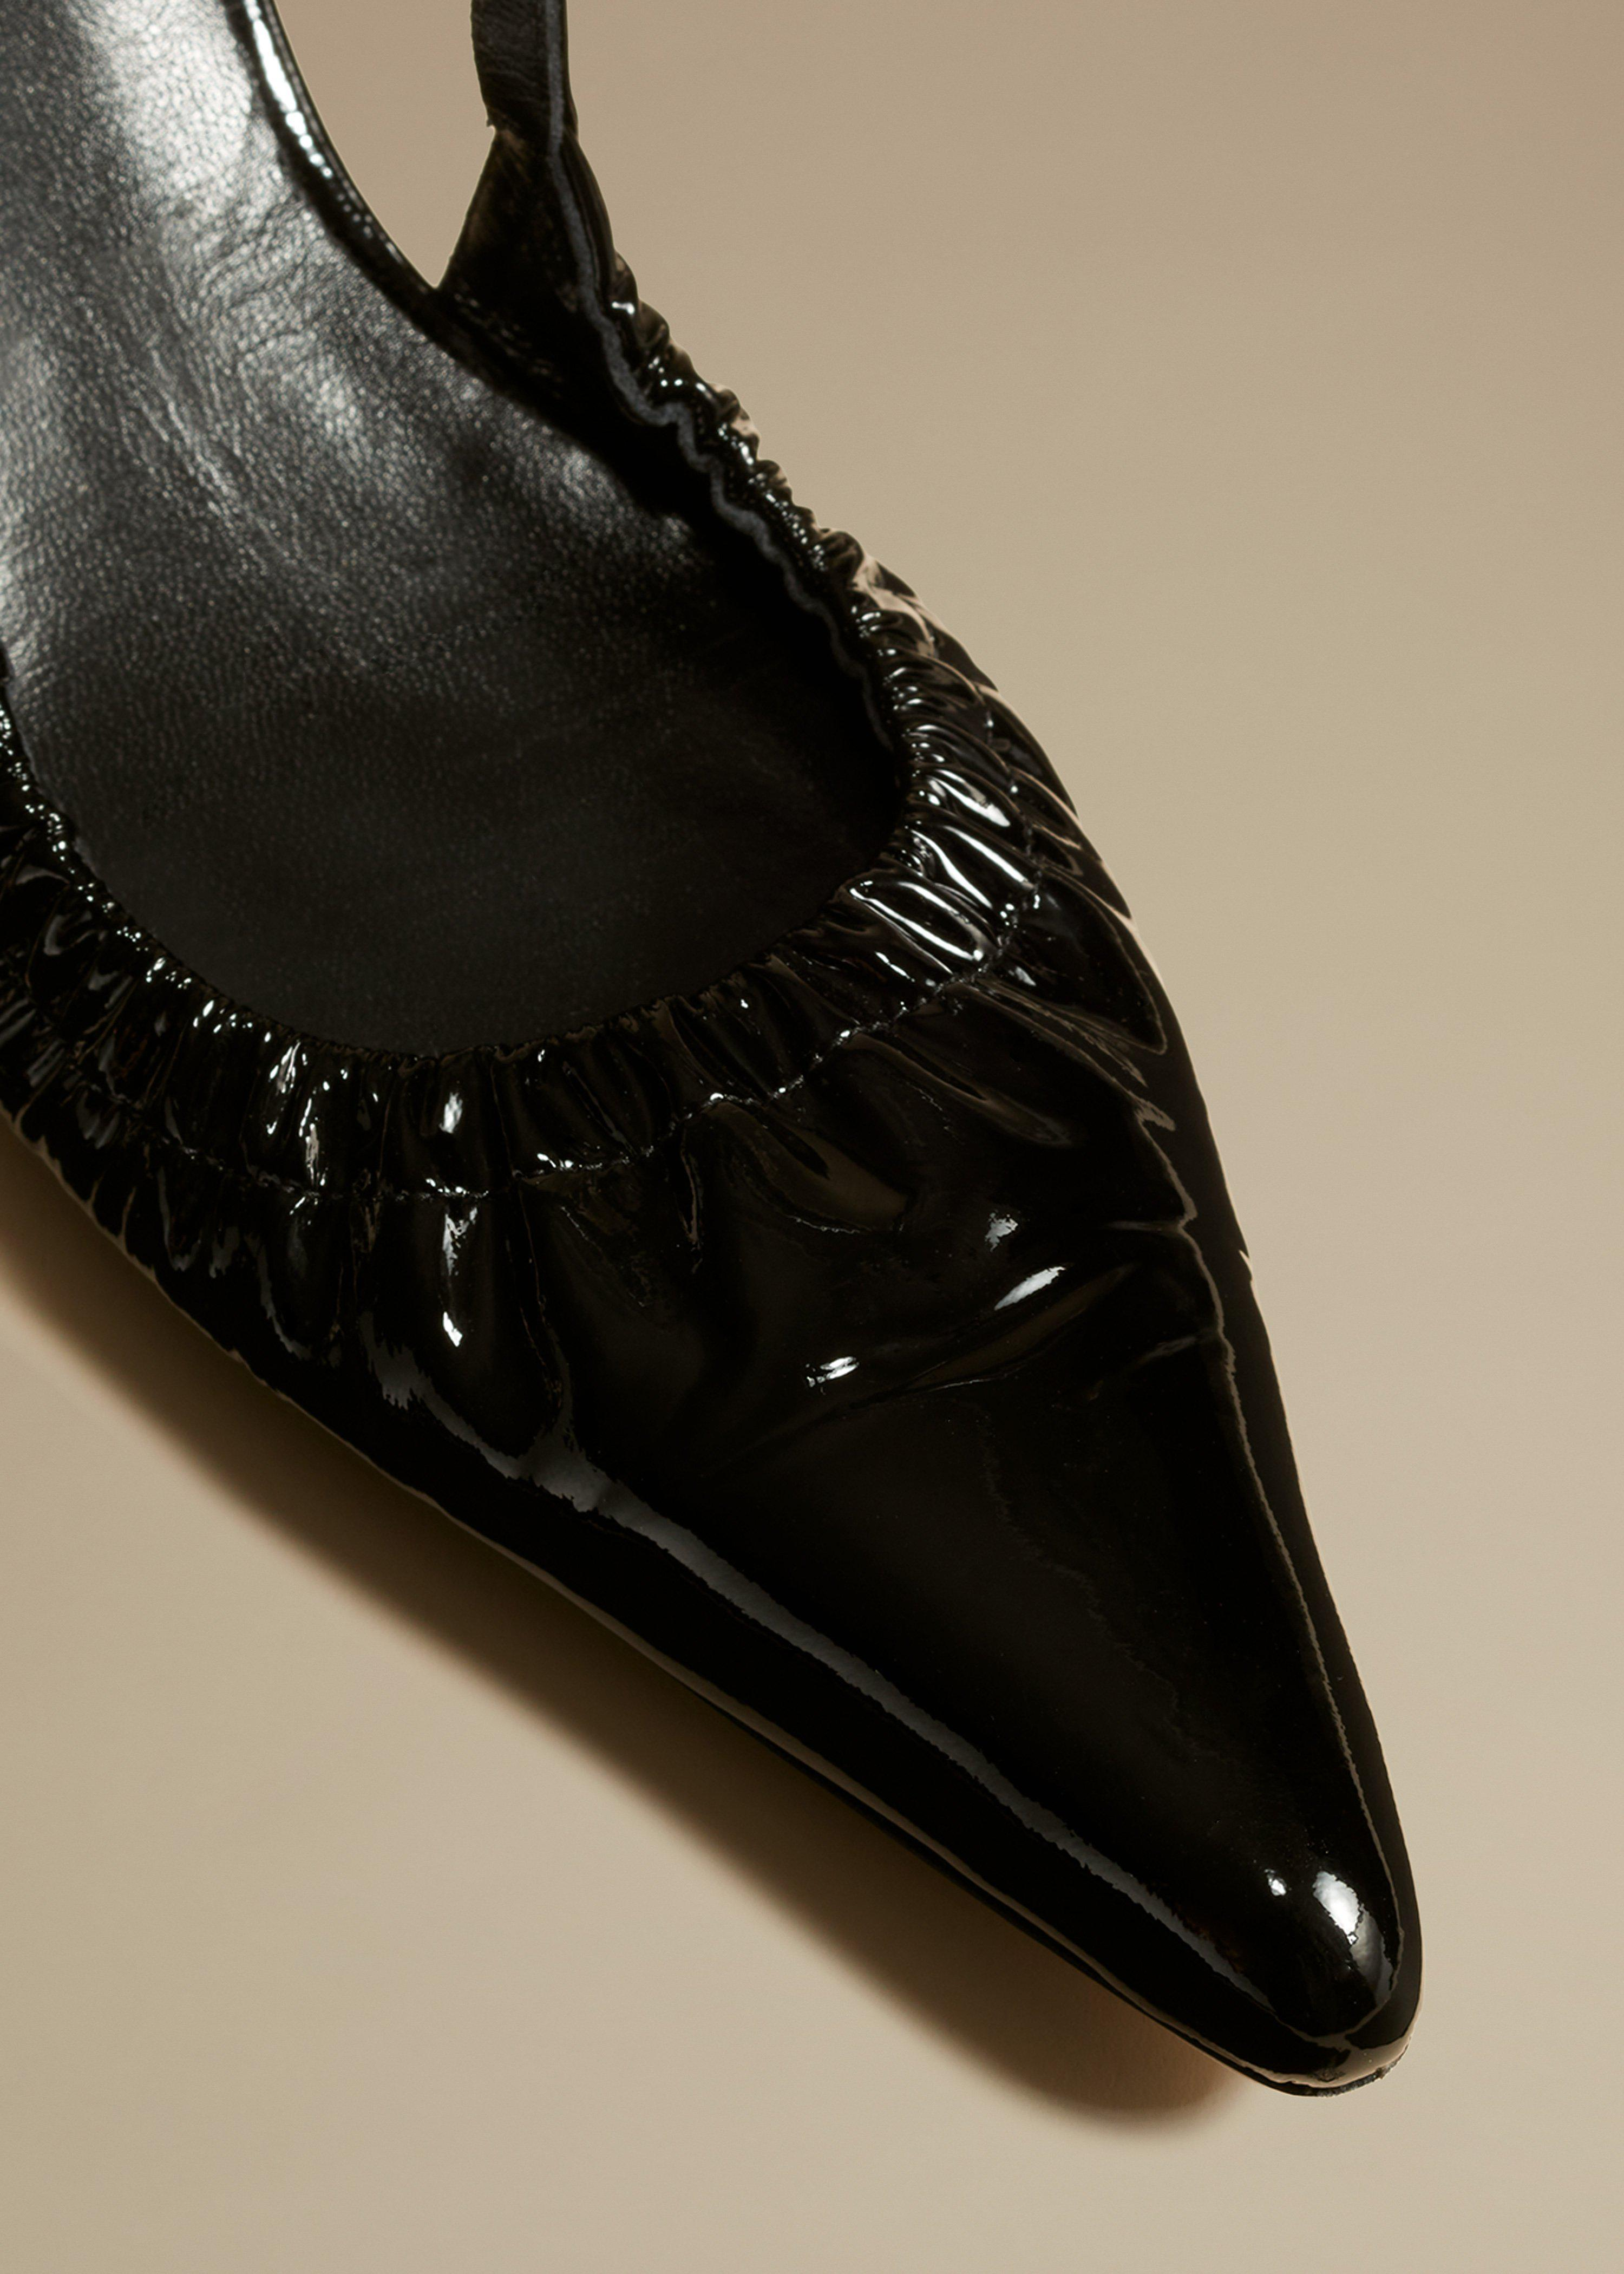 The Athens Pump in Black Patent Leather 5